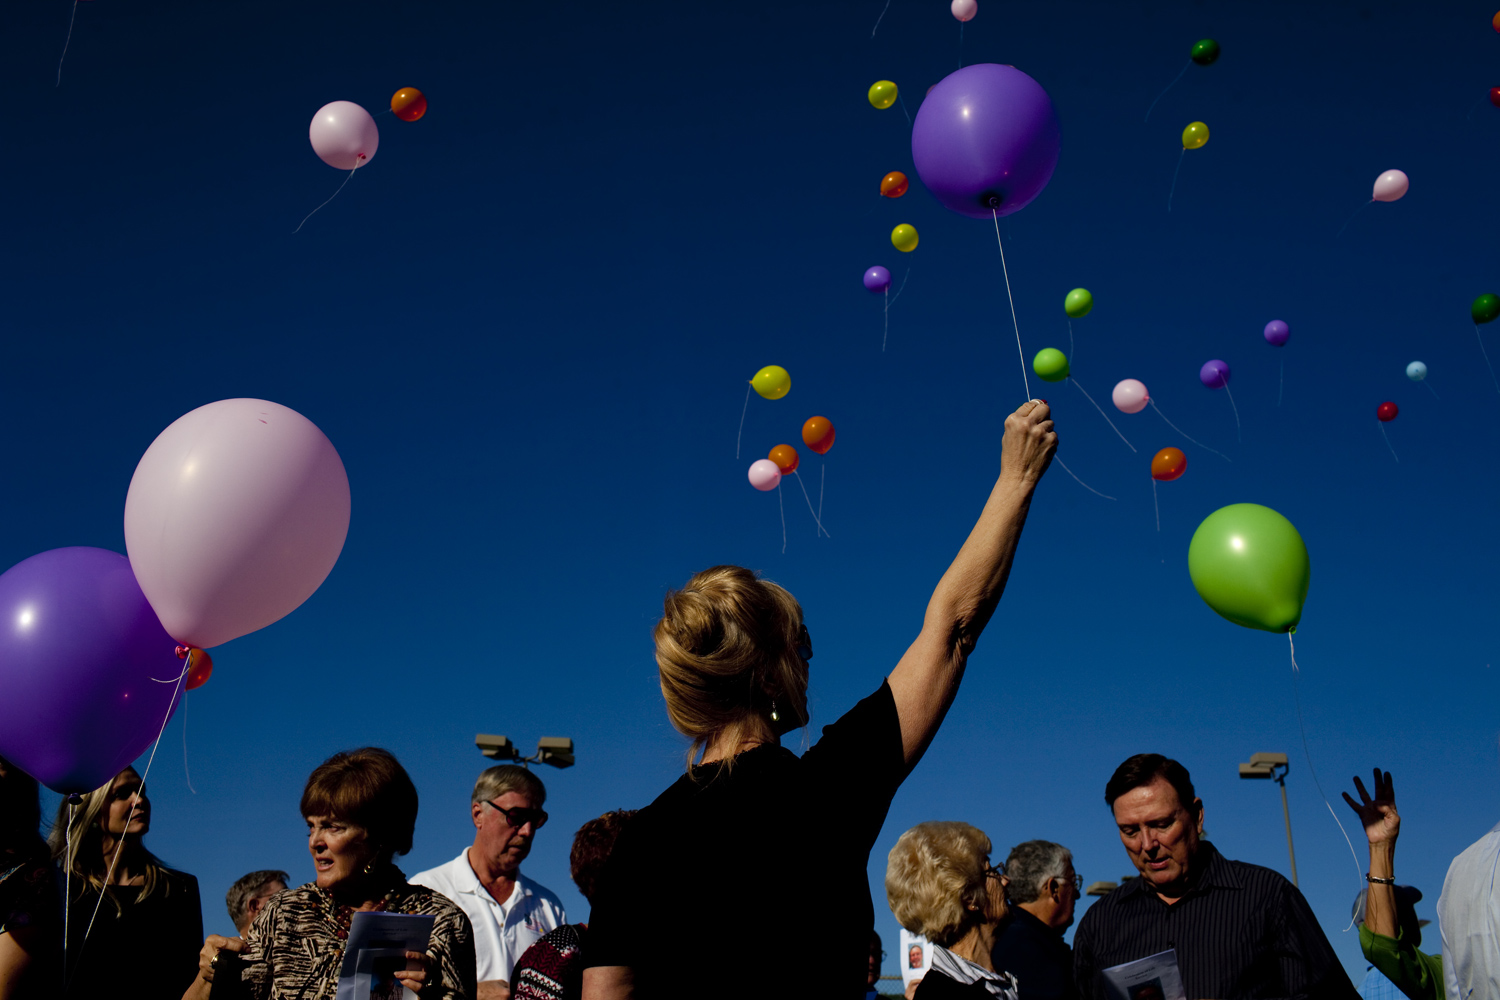 Resident release balloons at the memorial service for Monte Haag, a resident of Sun City, Arizona, who died last year while piloting an ultralight plane.